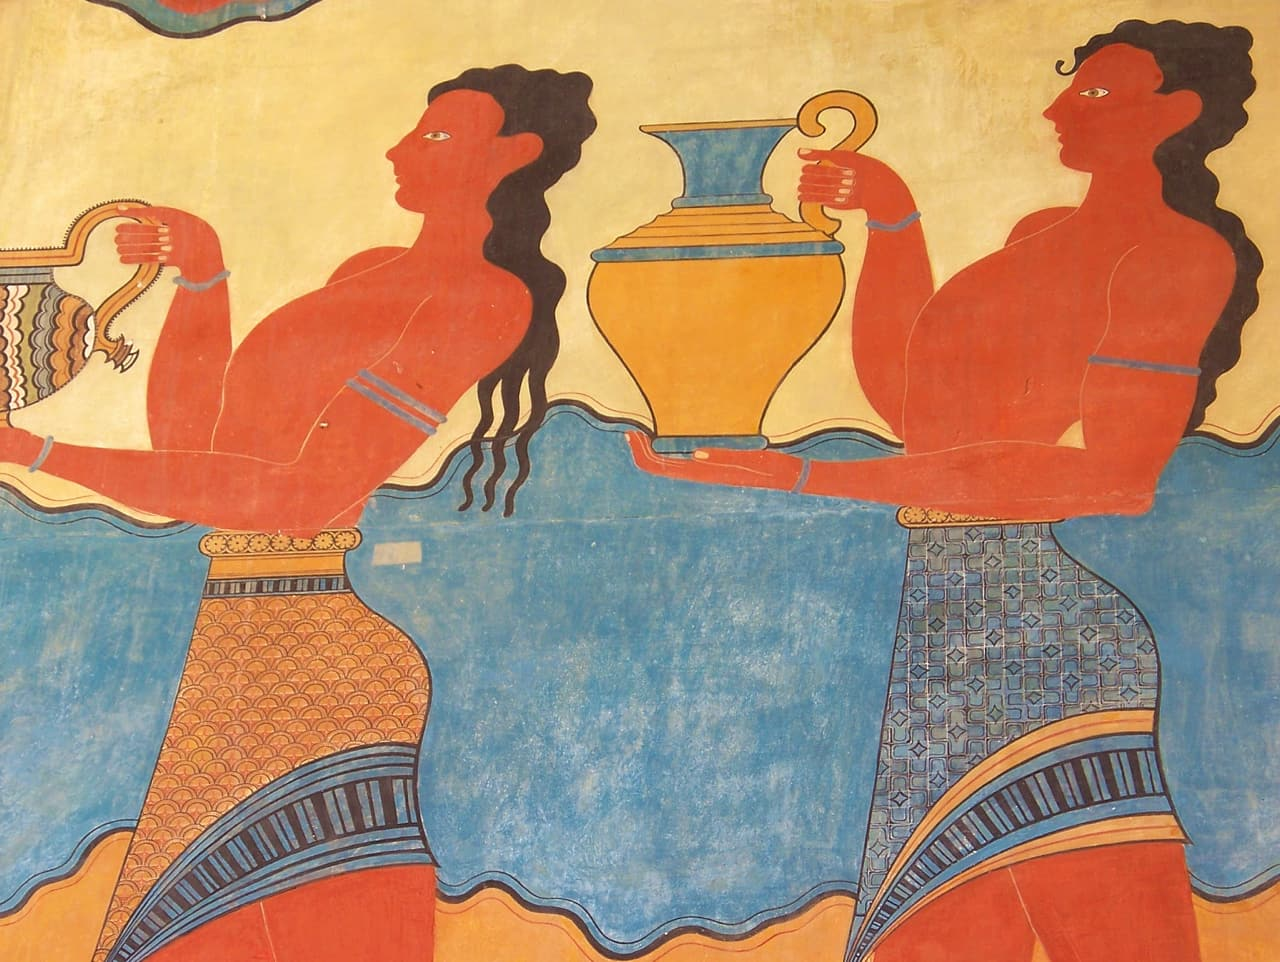 New Evidence Reveals Knossos, Europe's Oldest City, Three Times Bigger than Previously Believed